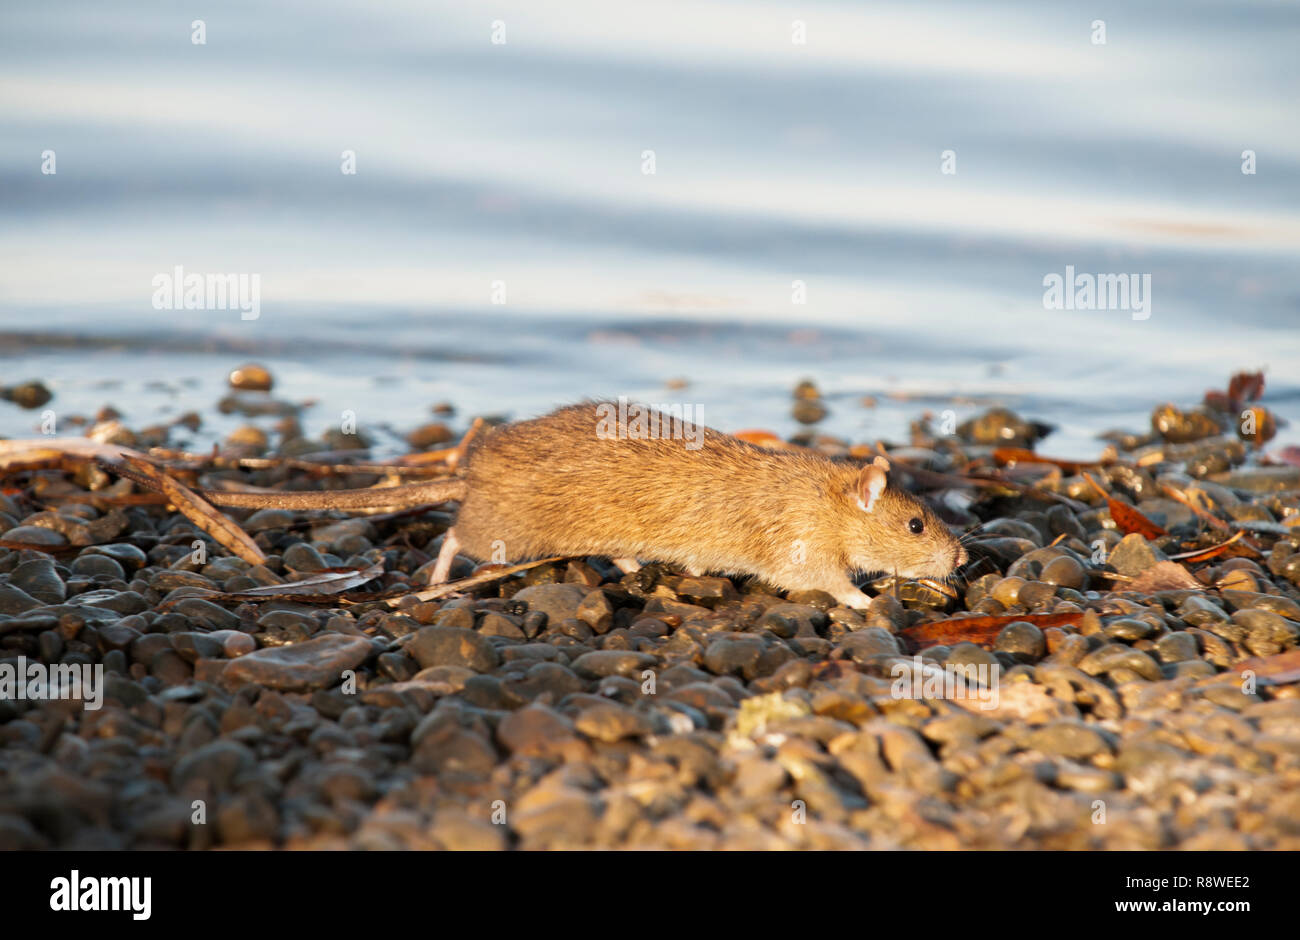 adult Brown Rat, Rattus norvegicus, on the banks of the River Thames, London, United Kingdom - Stock Image